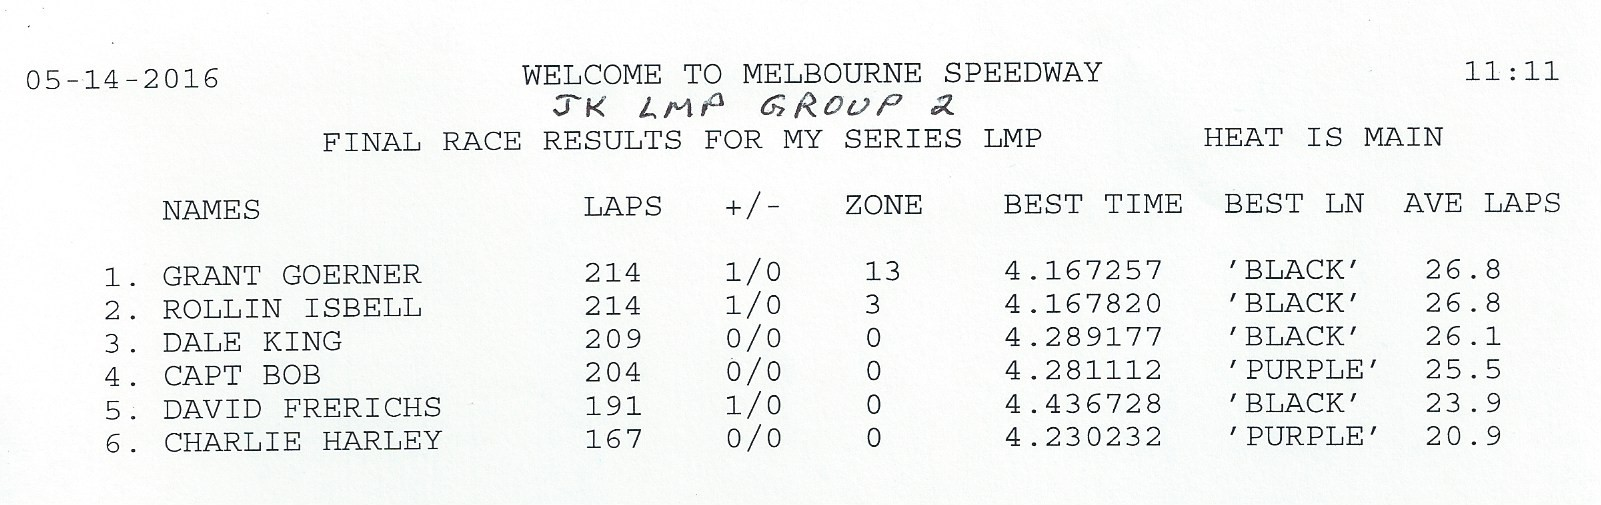 Melbourne JK LMP Group2 5-14-2016.jpg